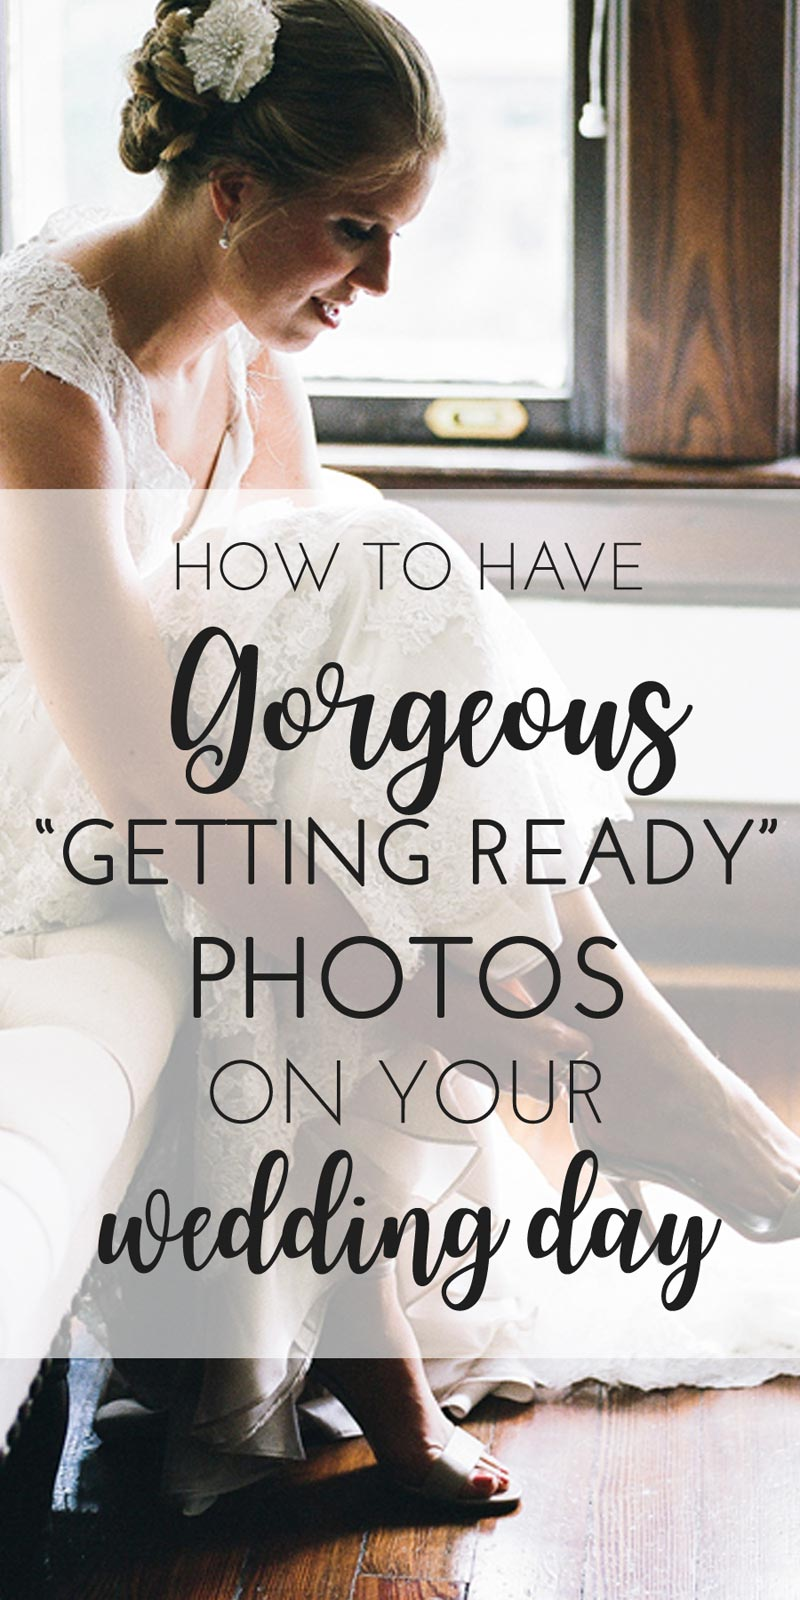 the number one thing for gorgeous getting ready photos